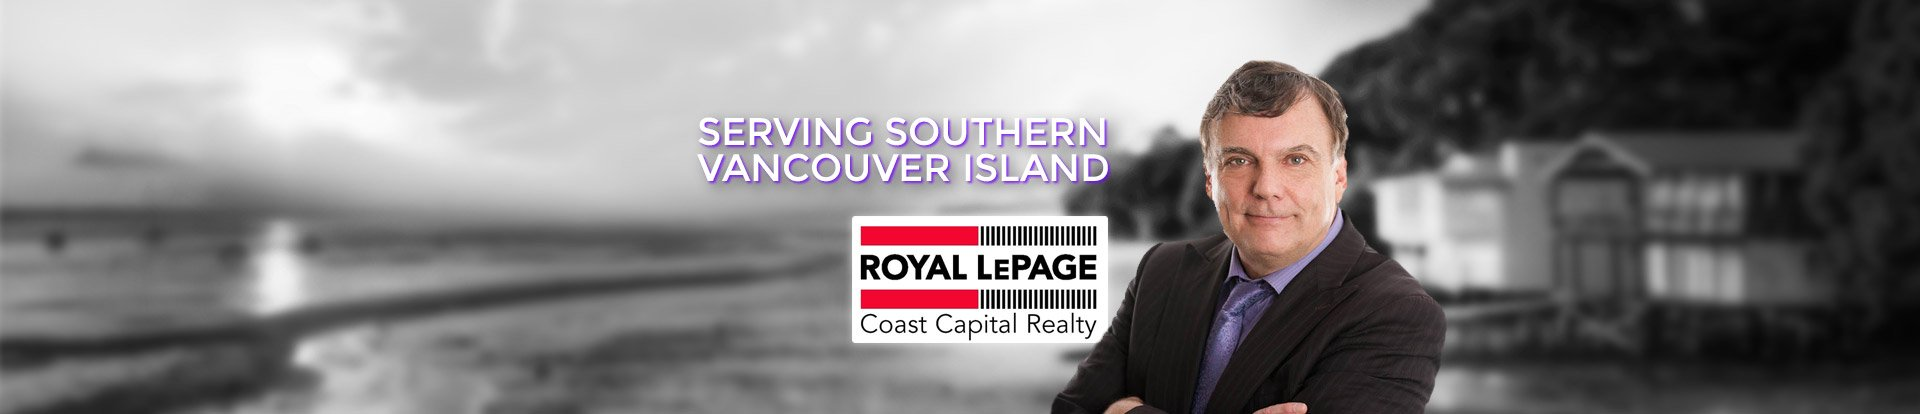 David Wardle - Royal LePage